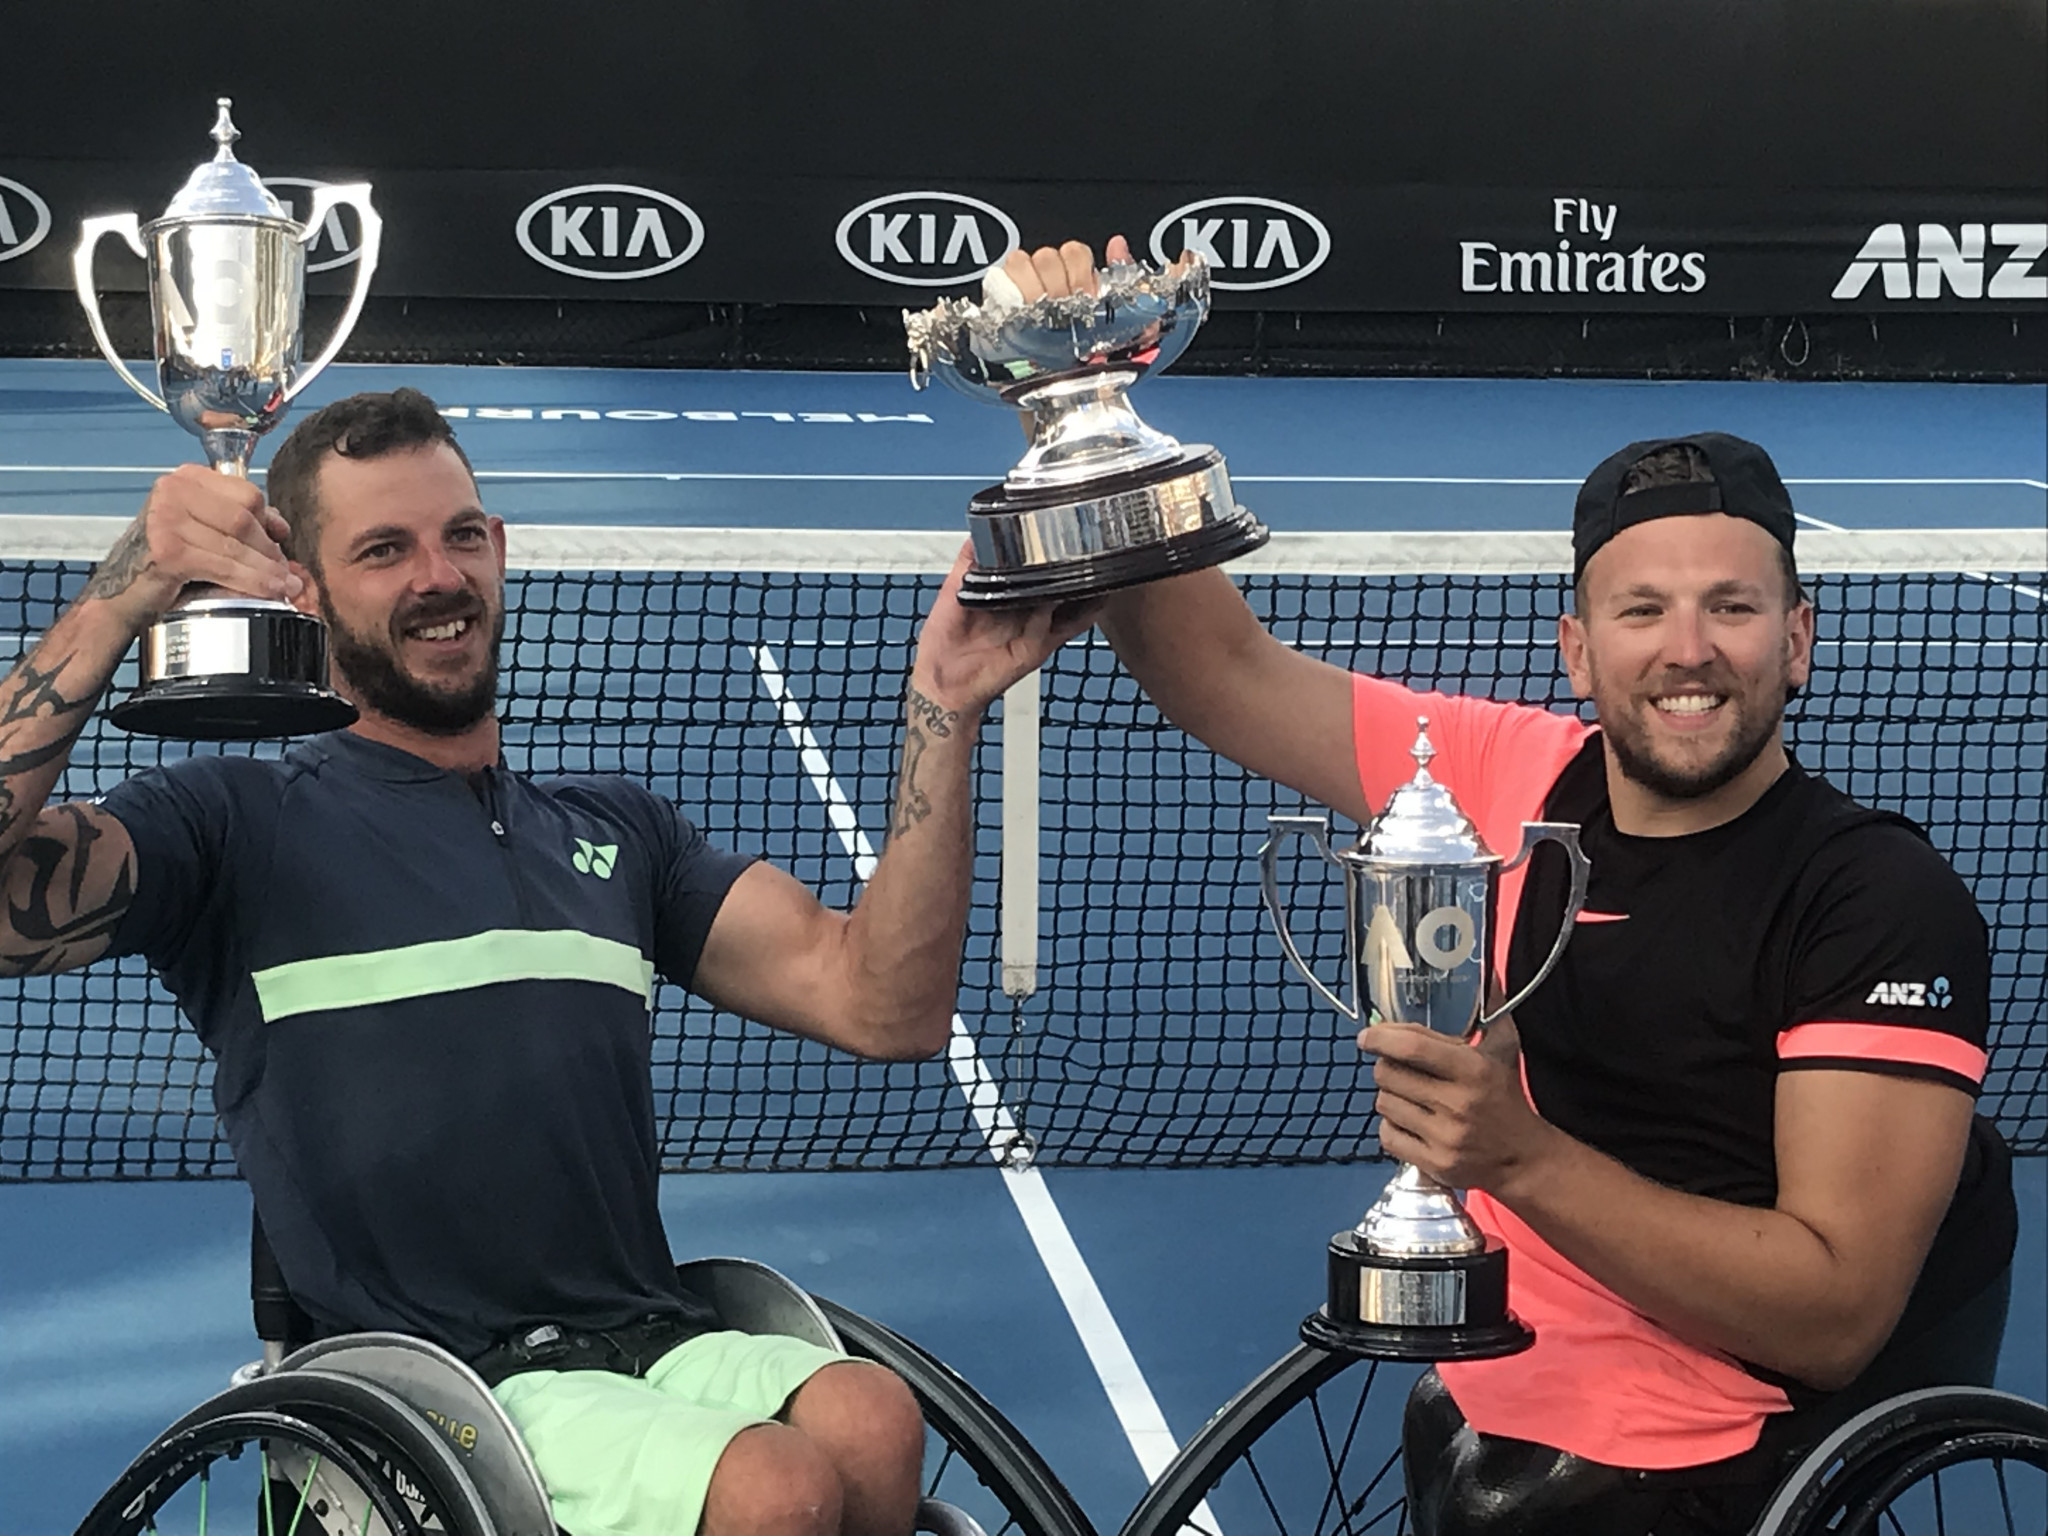 Alcott and Davidson give home fans reason to celebrate with quads victory at Australian Open